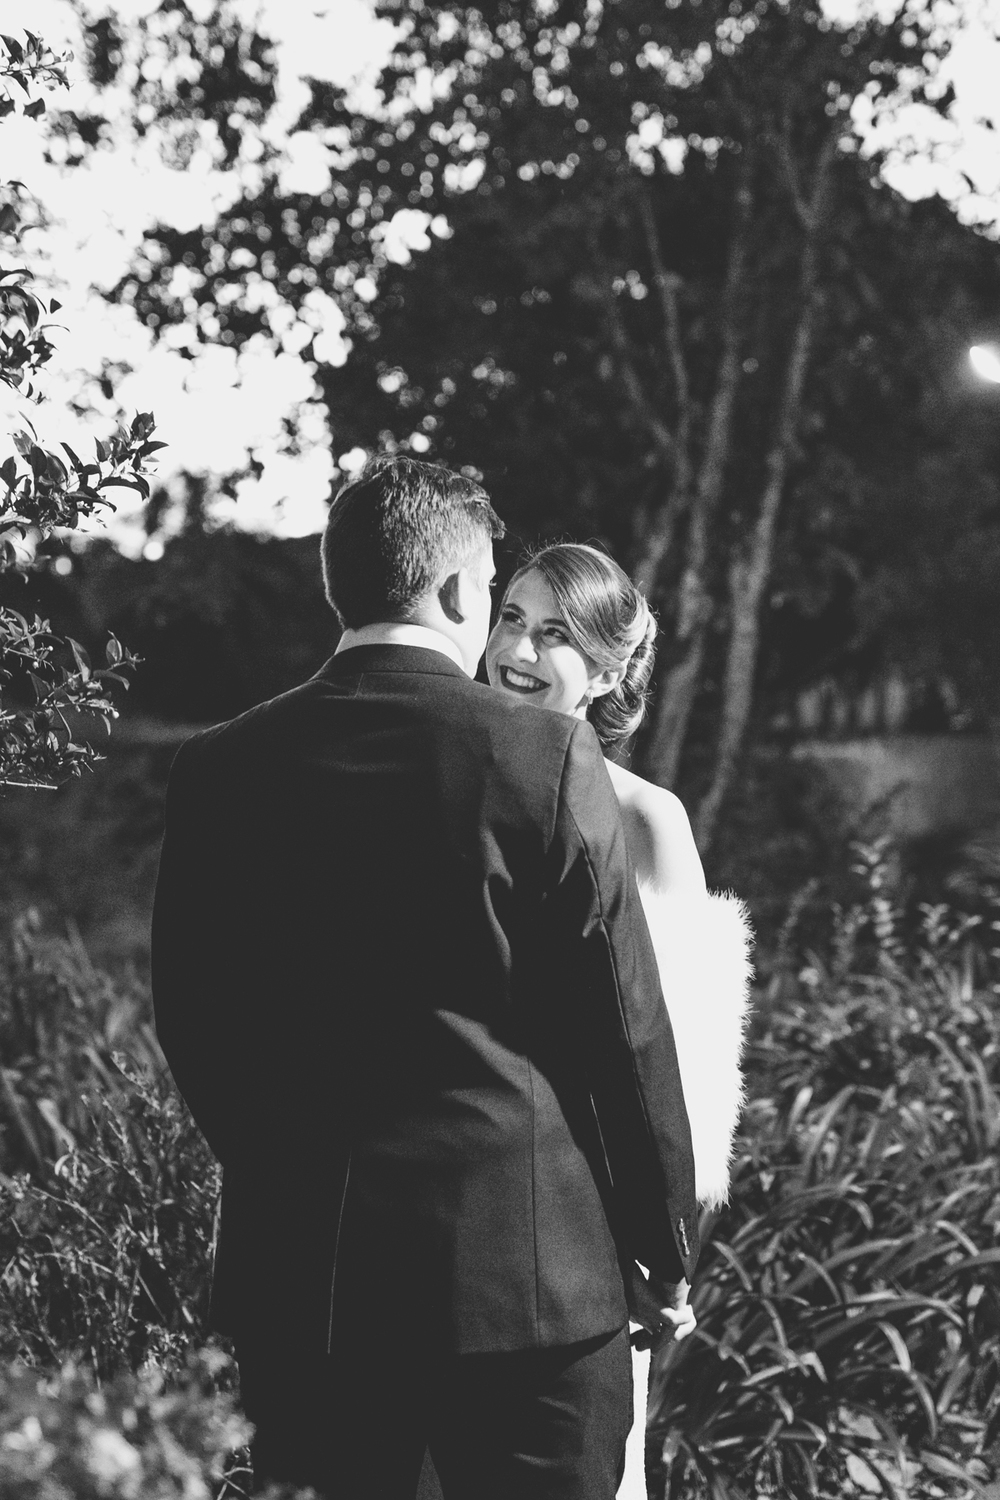 Rachel_takes_pictures_wedding_photography_tim_brianna-19.jpg